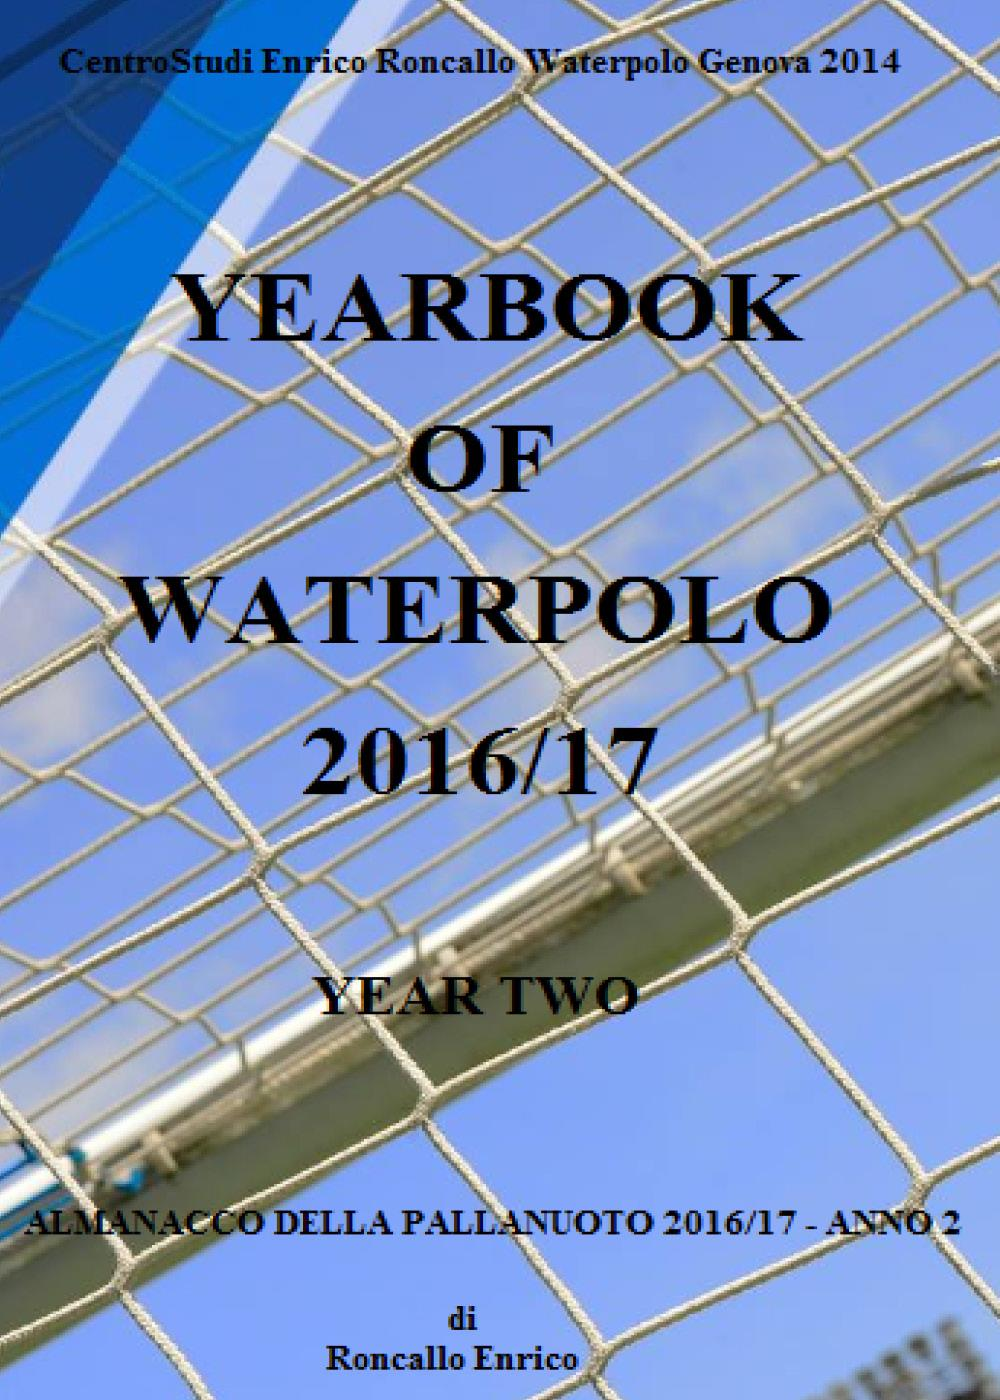 Yearbook of waterpolo 2016/17